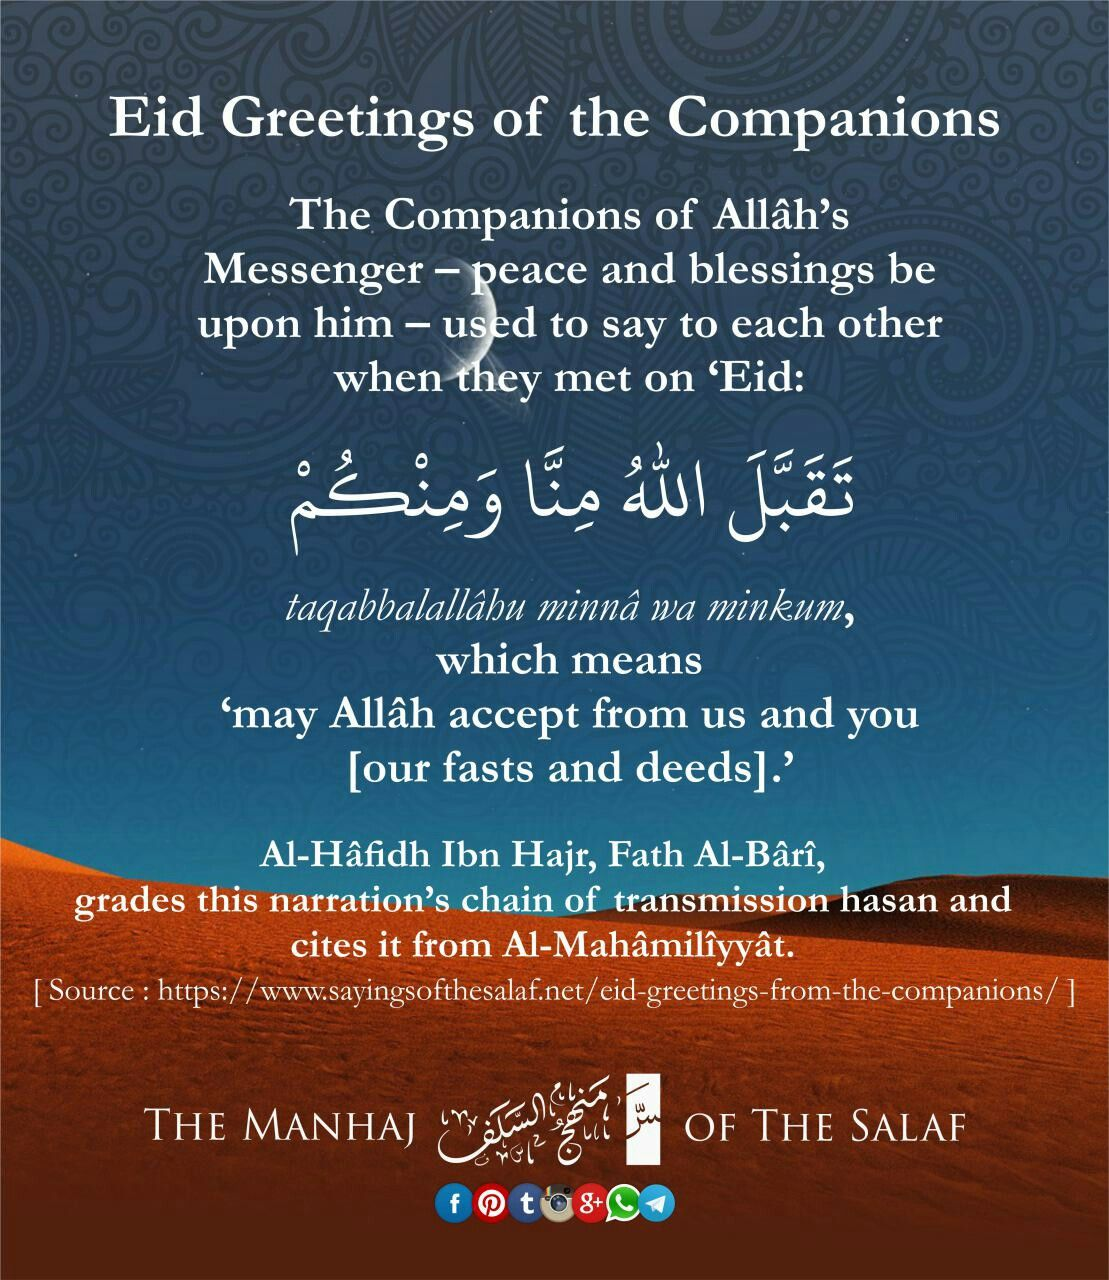 Eid greetings of the companions raman pinterest eid islam eid greetings of the companions kristyandbryce Images